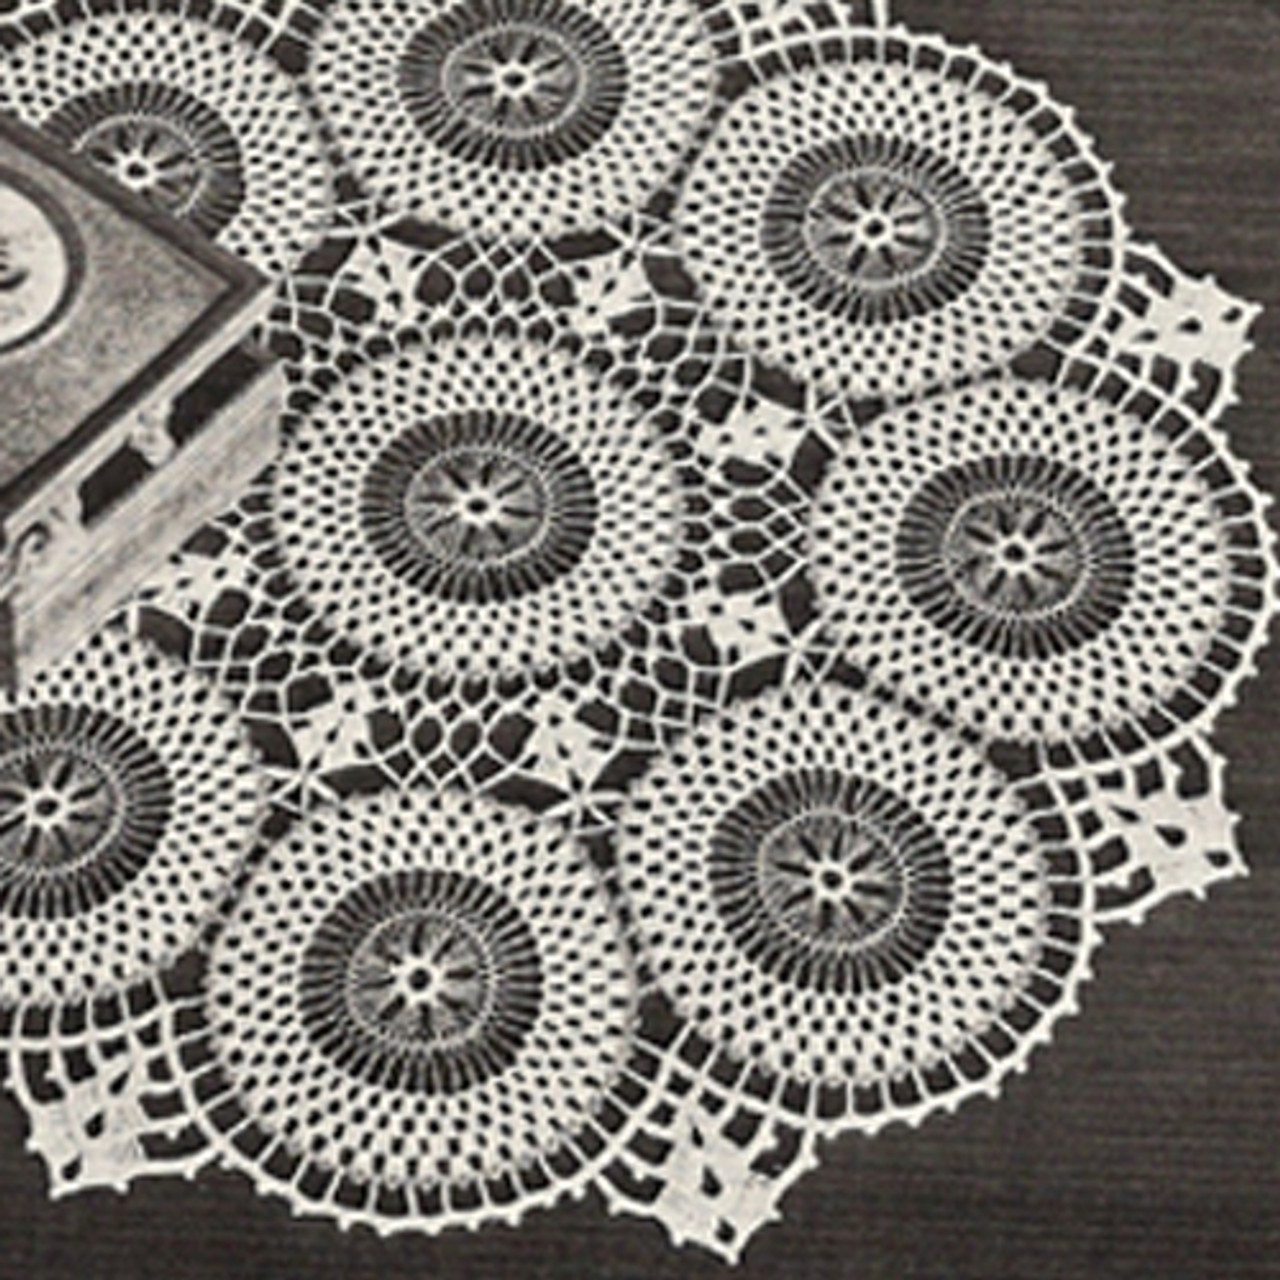 Lily Mills Circled Doily Crochet Pattern